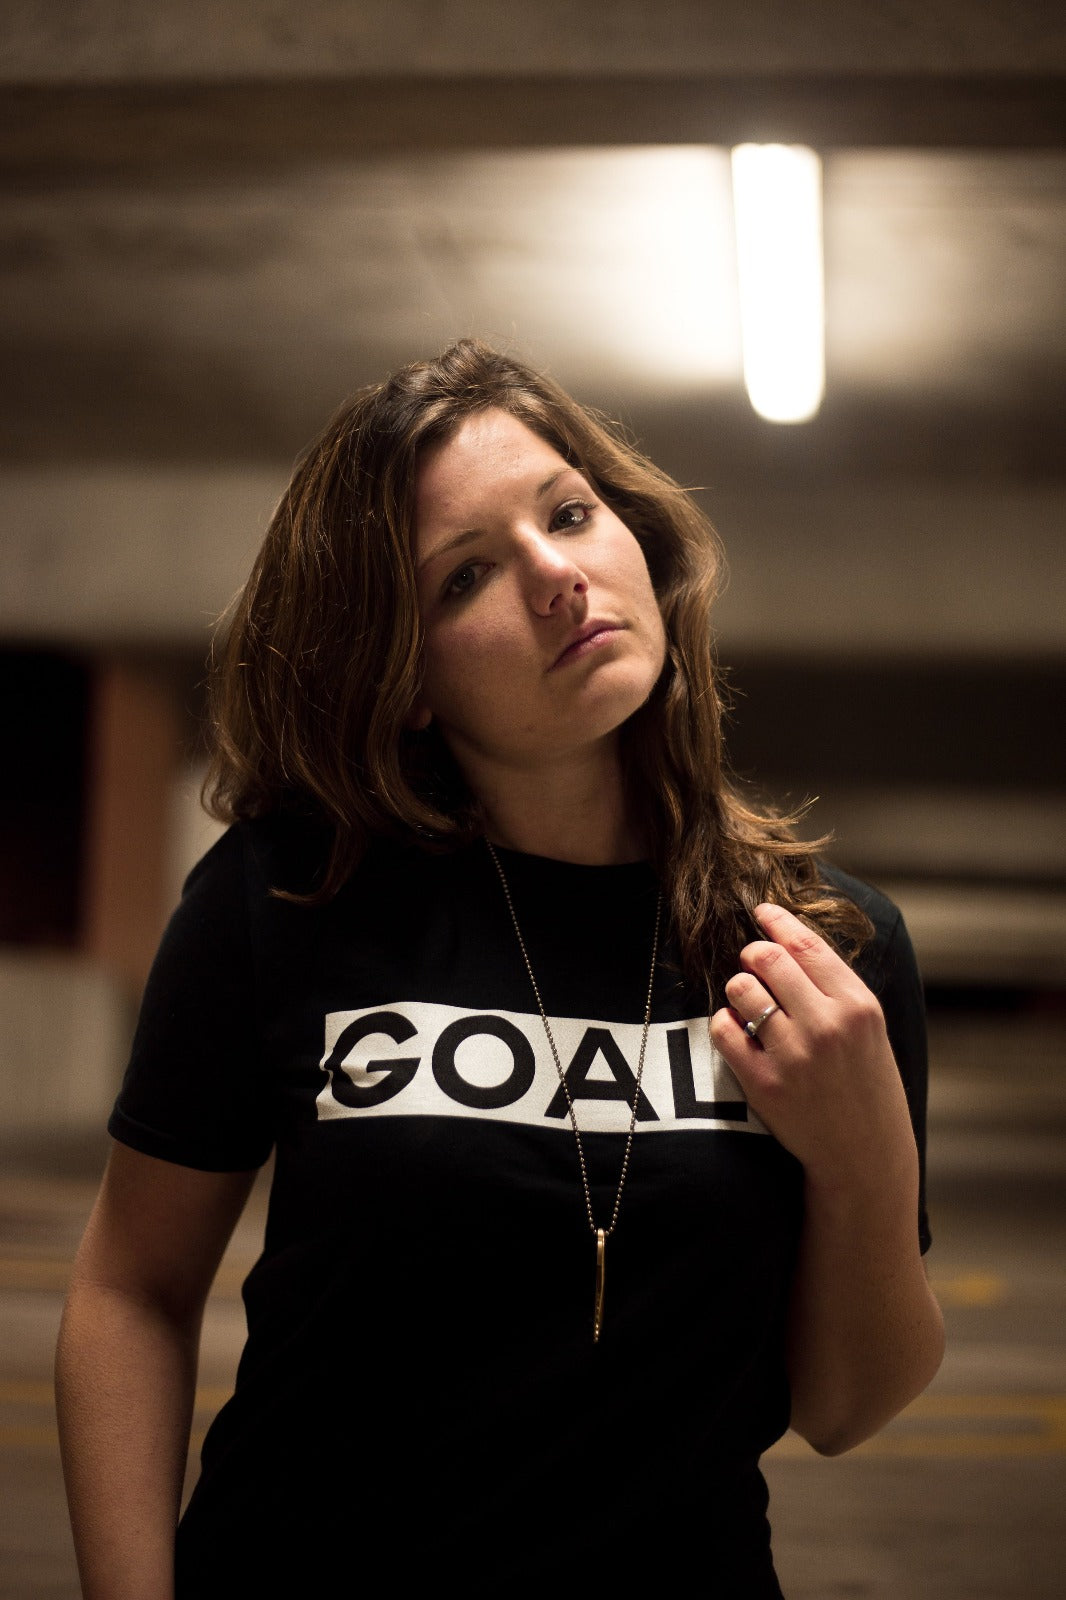 Goals Tee WSL by Squared Limited